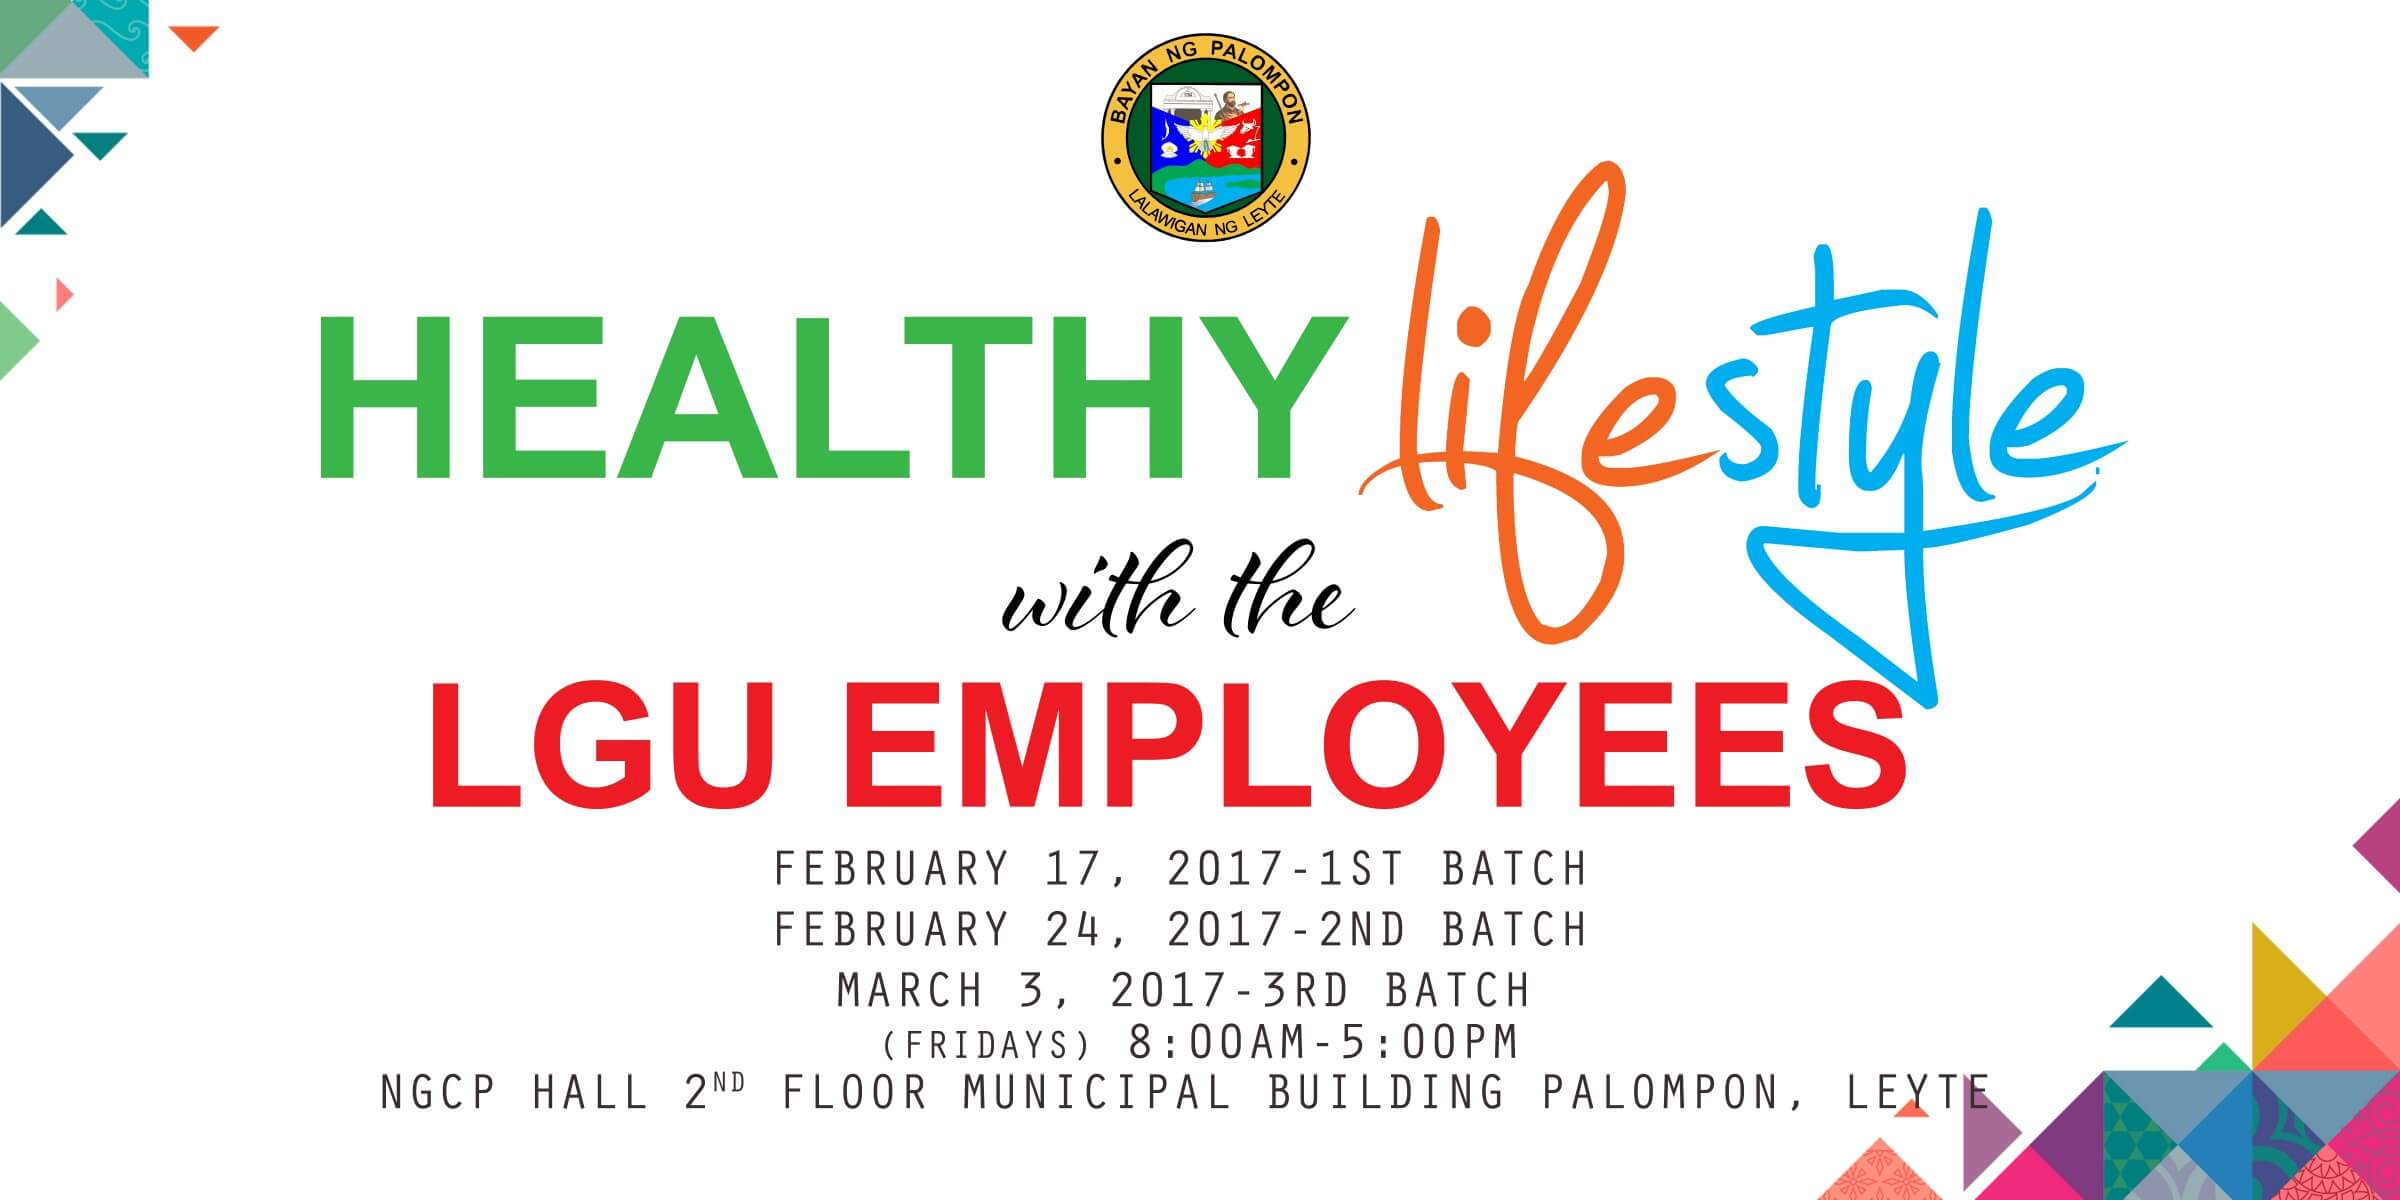 Healthy Lifestyle Program with the LGU Employees